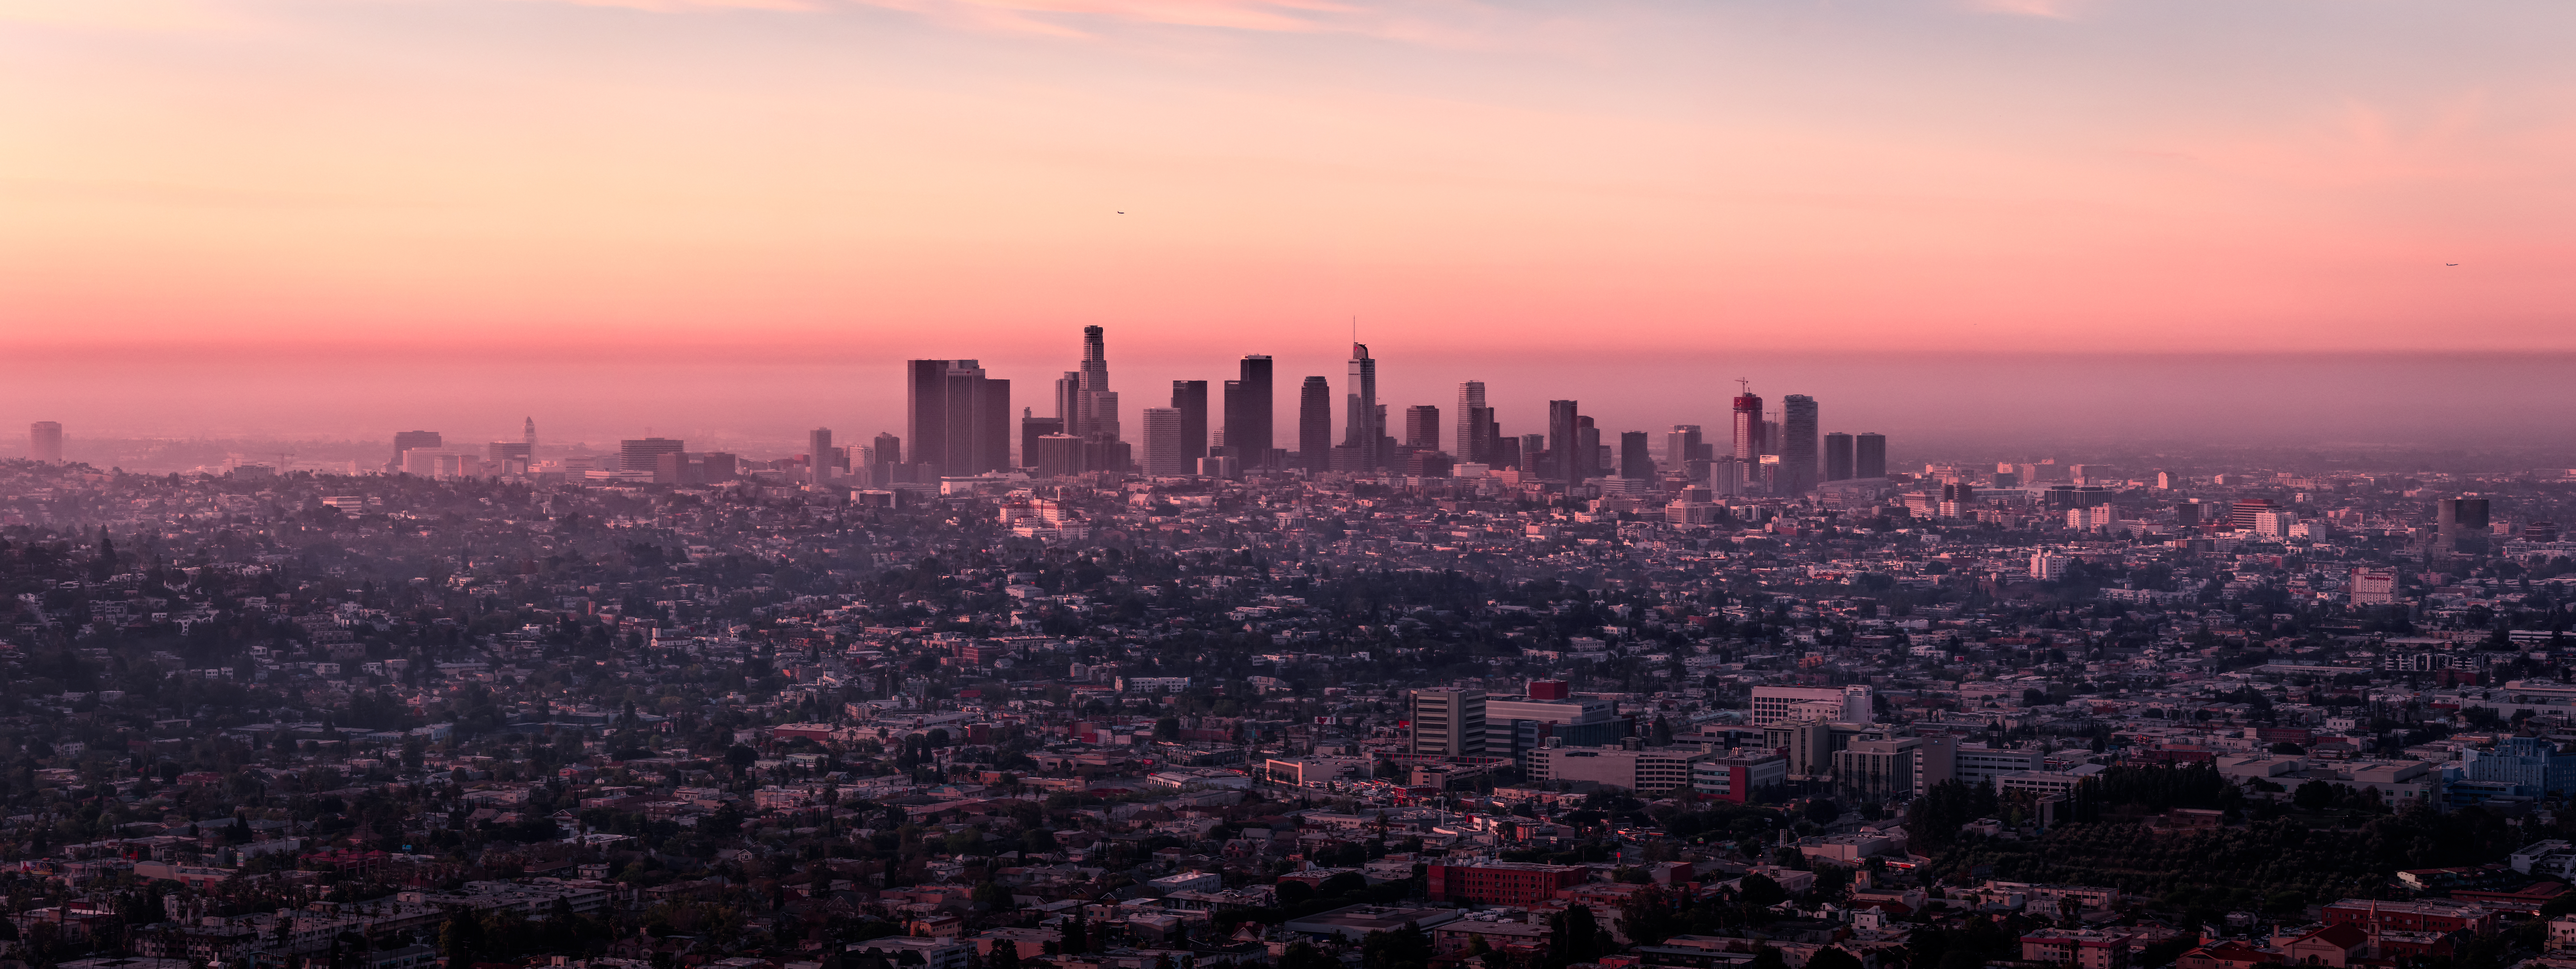 Cars Wallpaper Infront Of Skyline 100 Beautiful Los Angeles Pictures Download Free Images